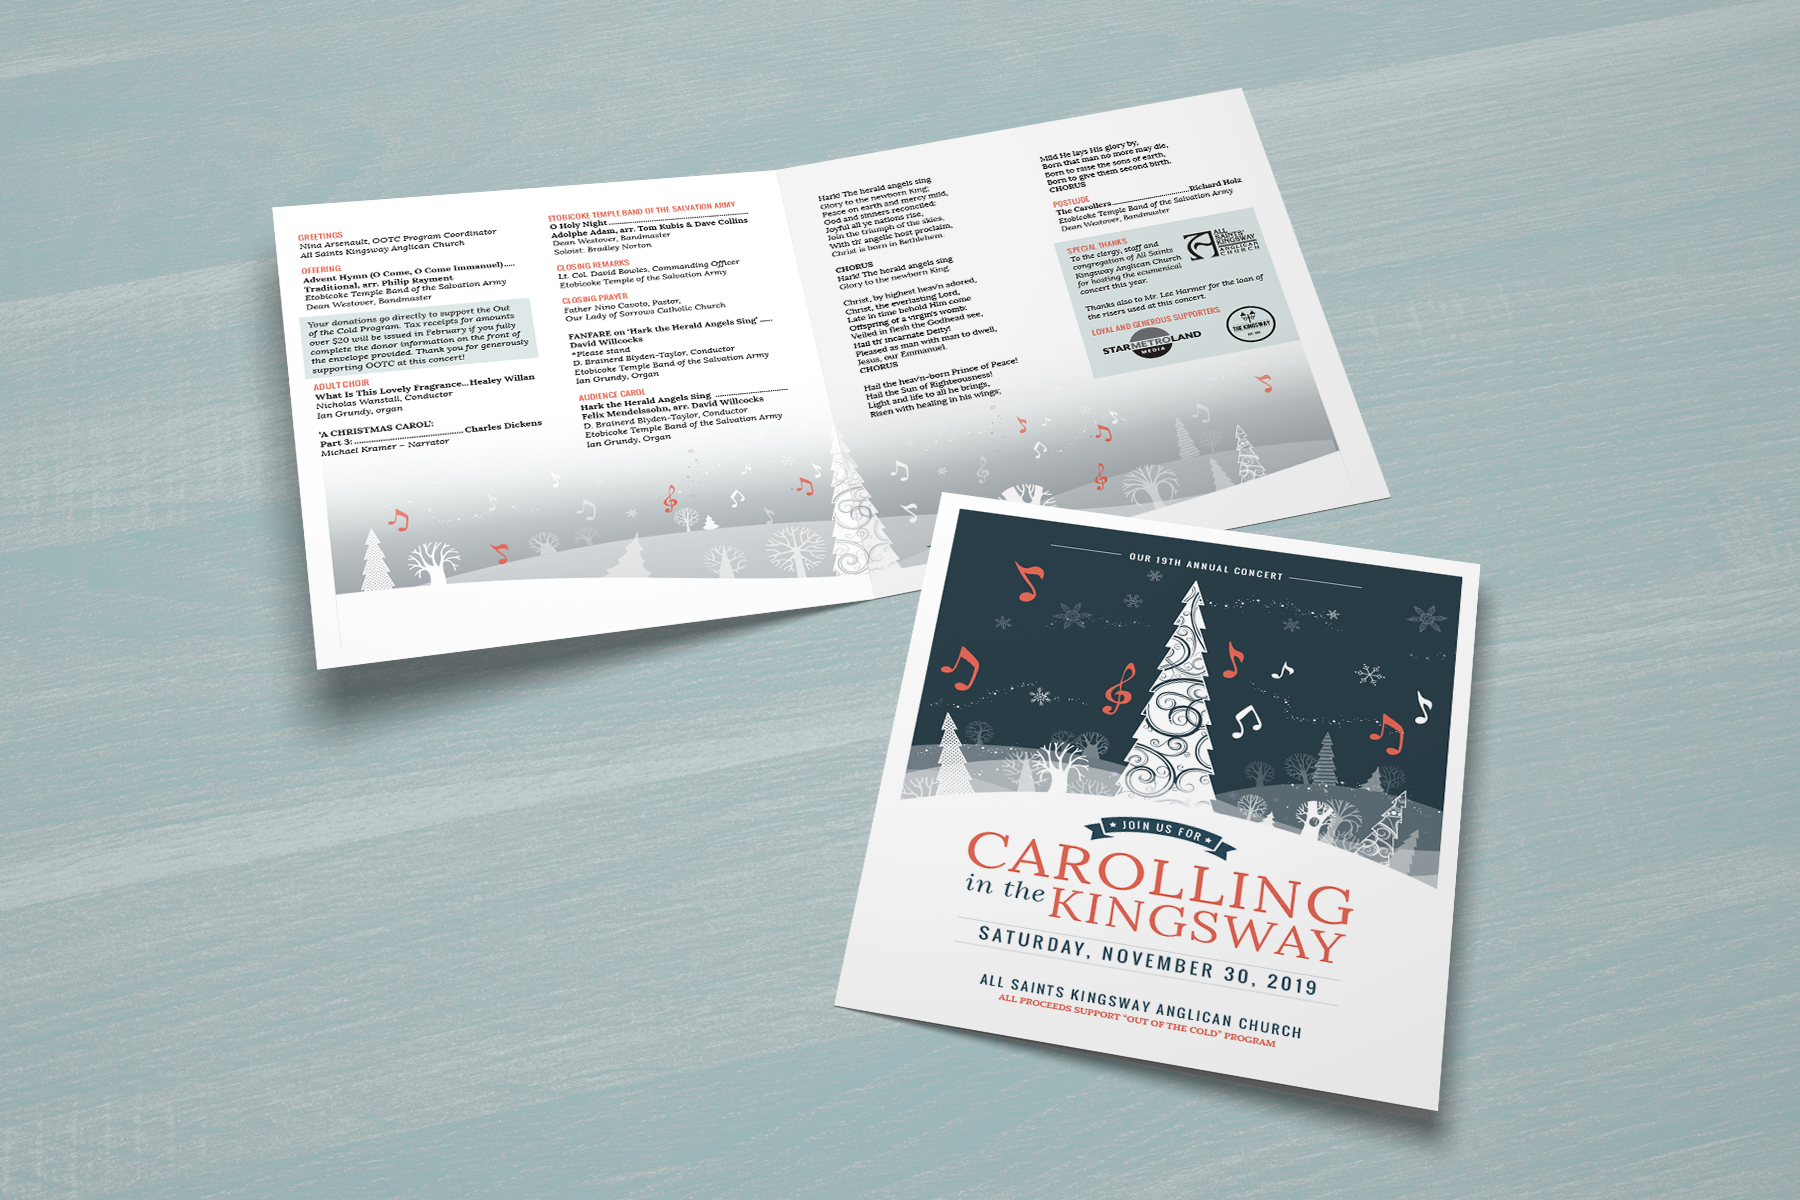 Carolling on the Kingsway Booklet Design